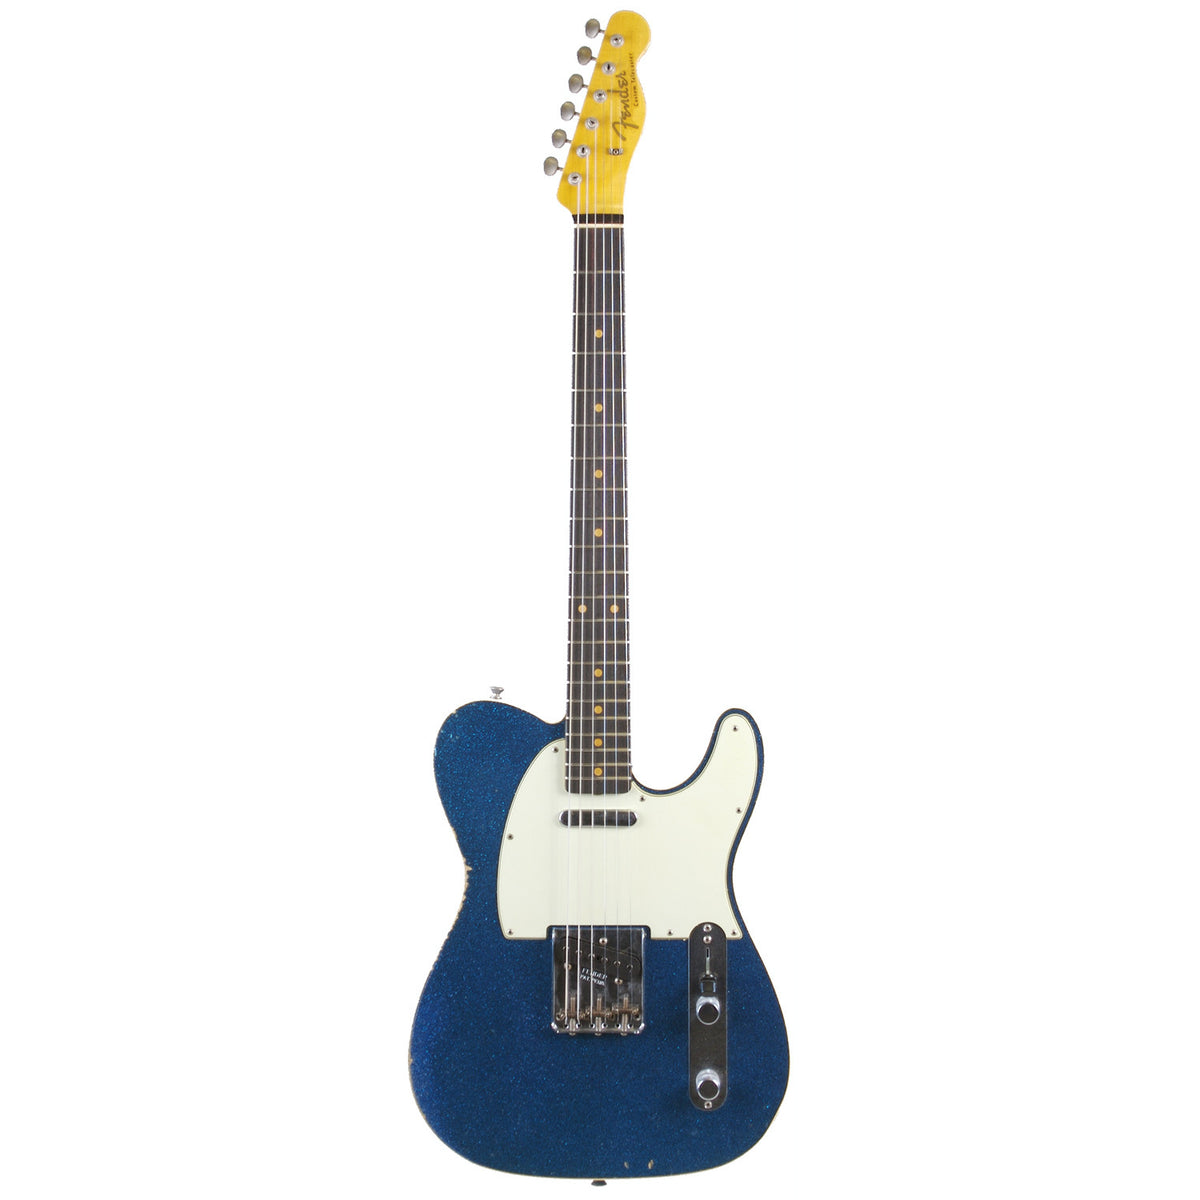 Fender Custom Shop '60 Telecaster Relic Blue Sparkle - Garrett Park Guitars  - 3